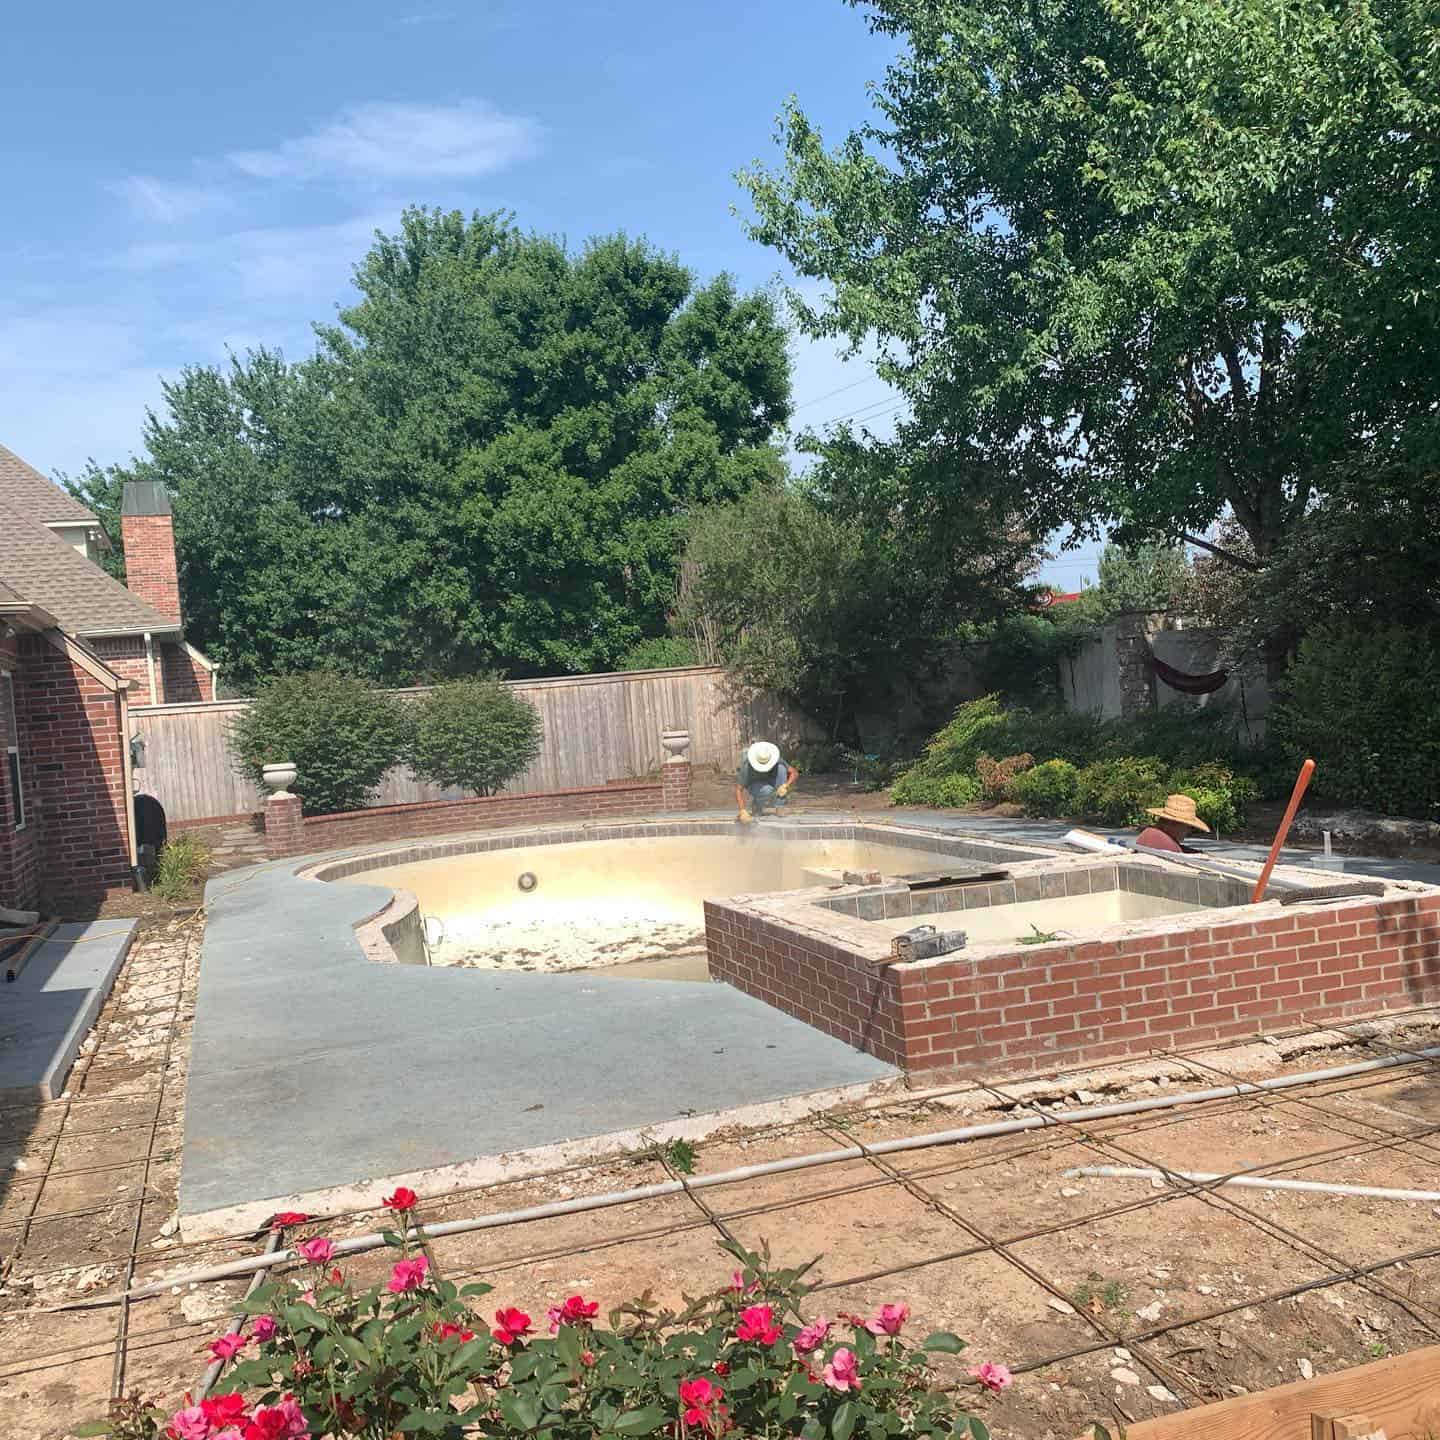 Pool Company Serving Collinsville, Oklahoma